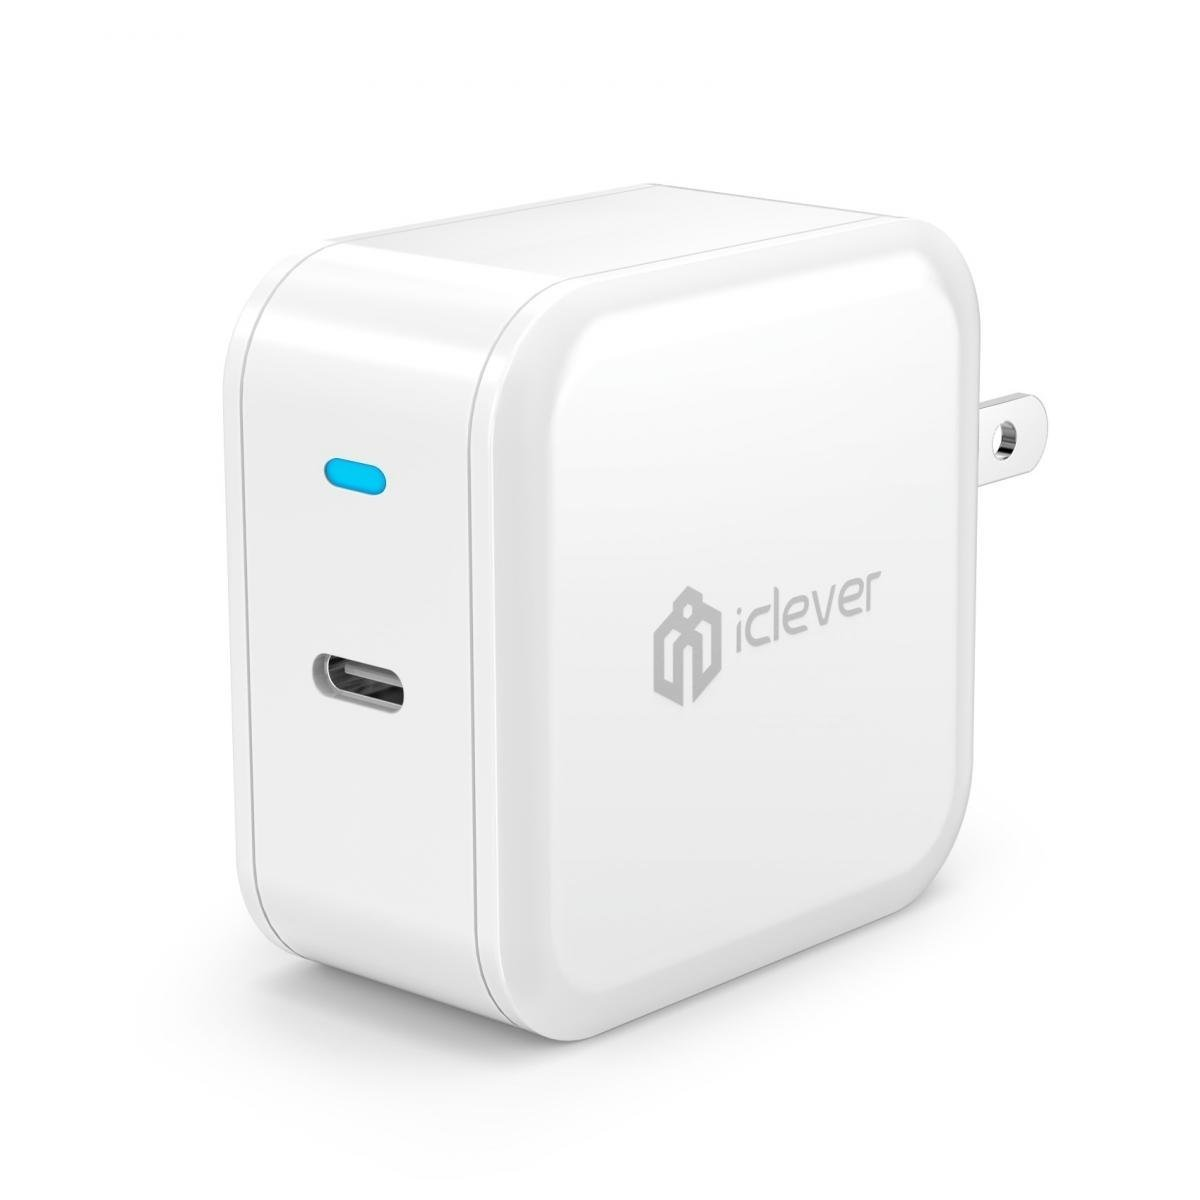 USB C Charger, iClever 30W USB Type C Power Delivery Wall Charger with Foldable Plug for iPhone X/8/8 Plus, Macbook 2015/2016, Pixel C, Nexus 5X/6P, Galaxy Note 5, LG G5, Moto Z, HTC 10 and more